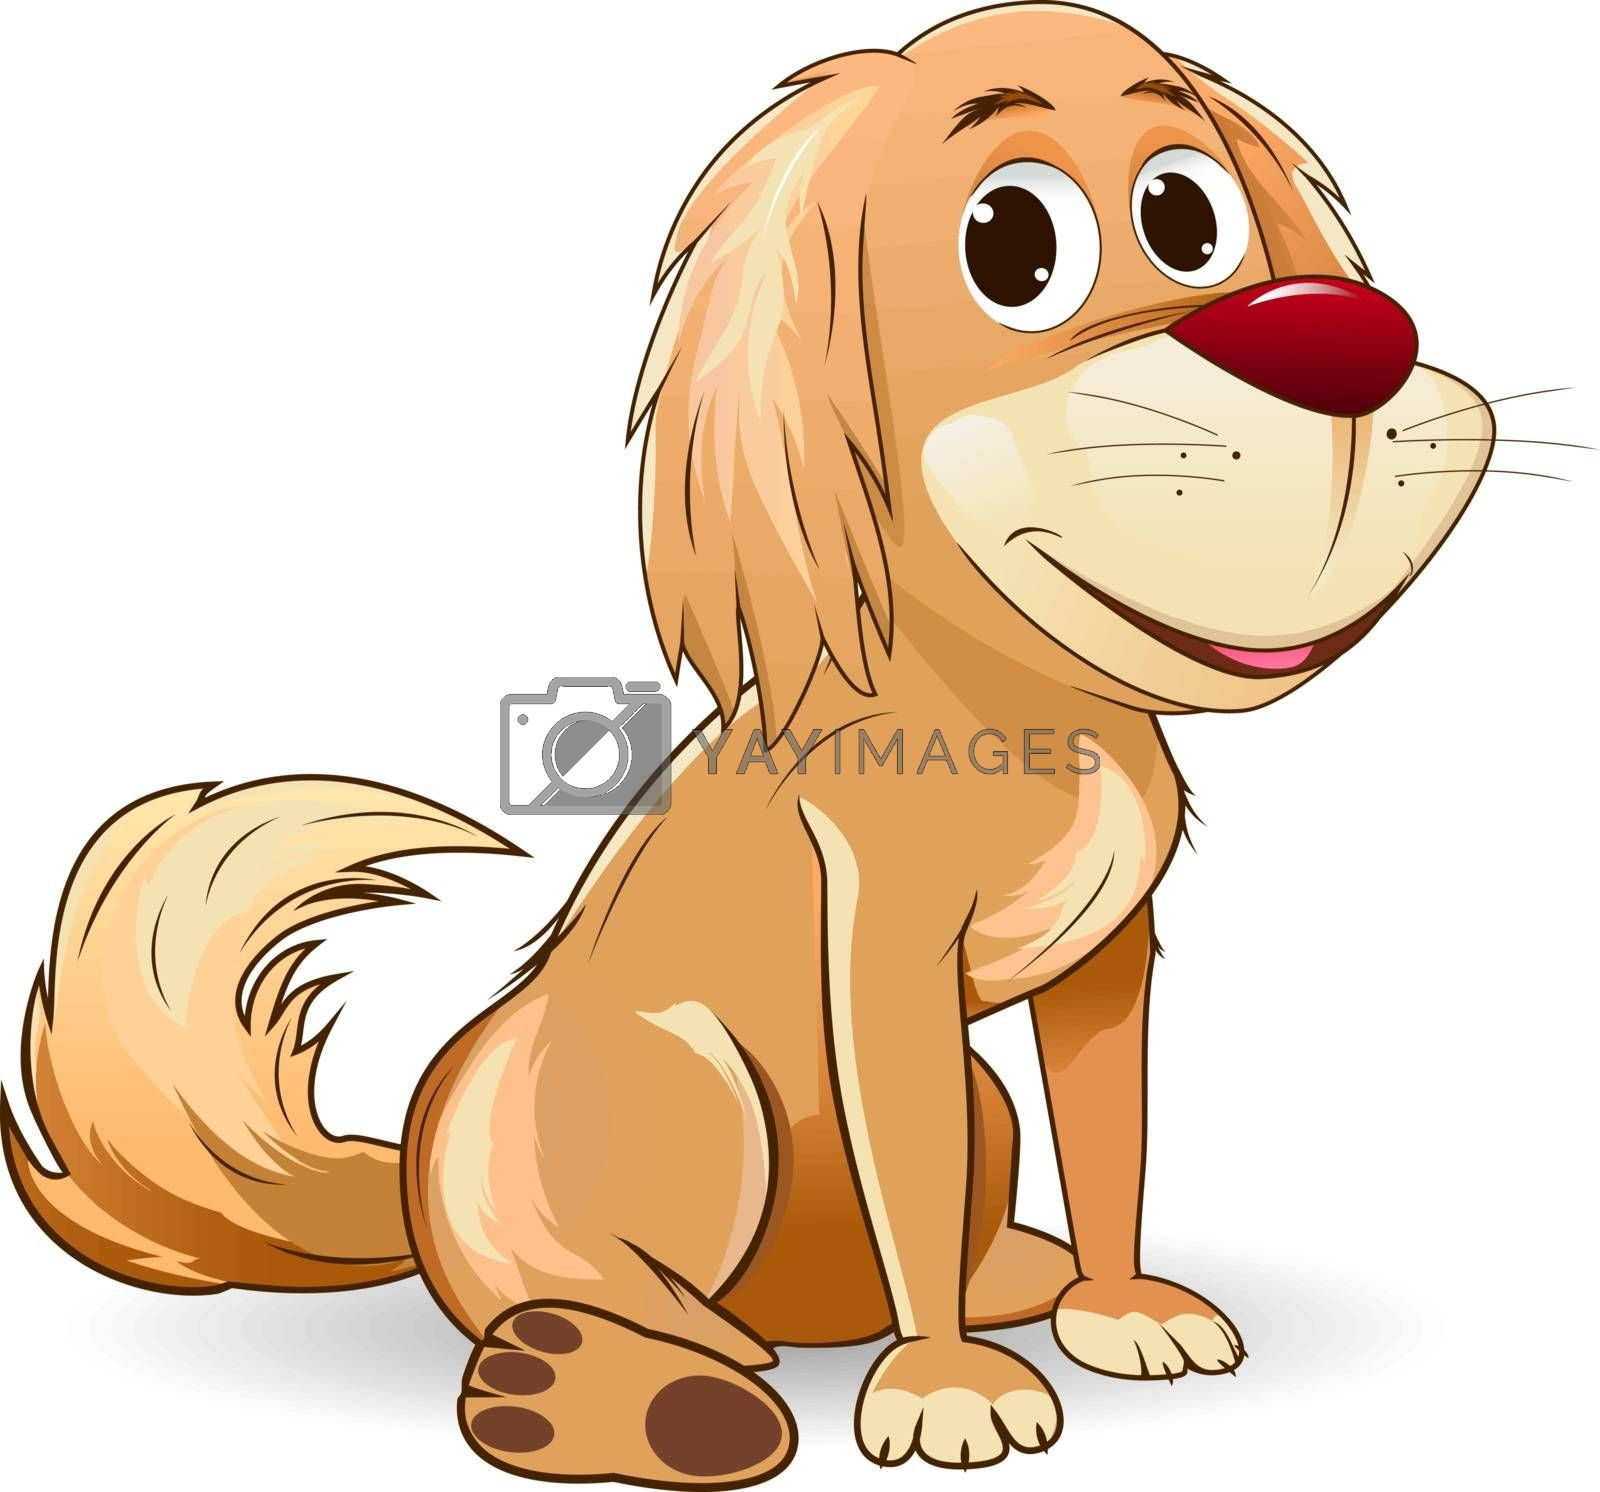 Sitting dog. Brown mongrel on a white background. Dog with a red nose.